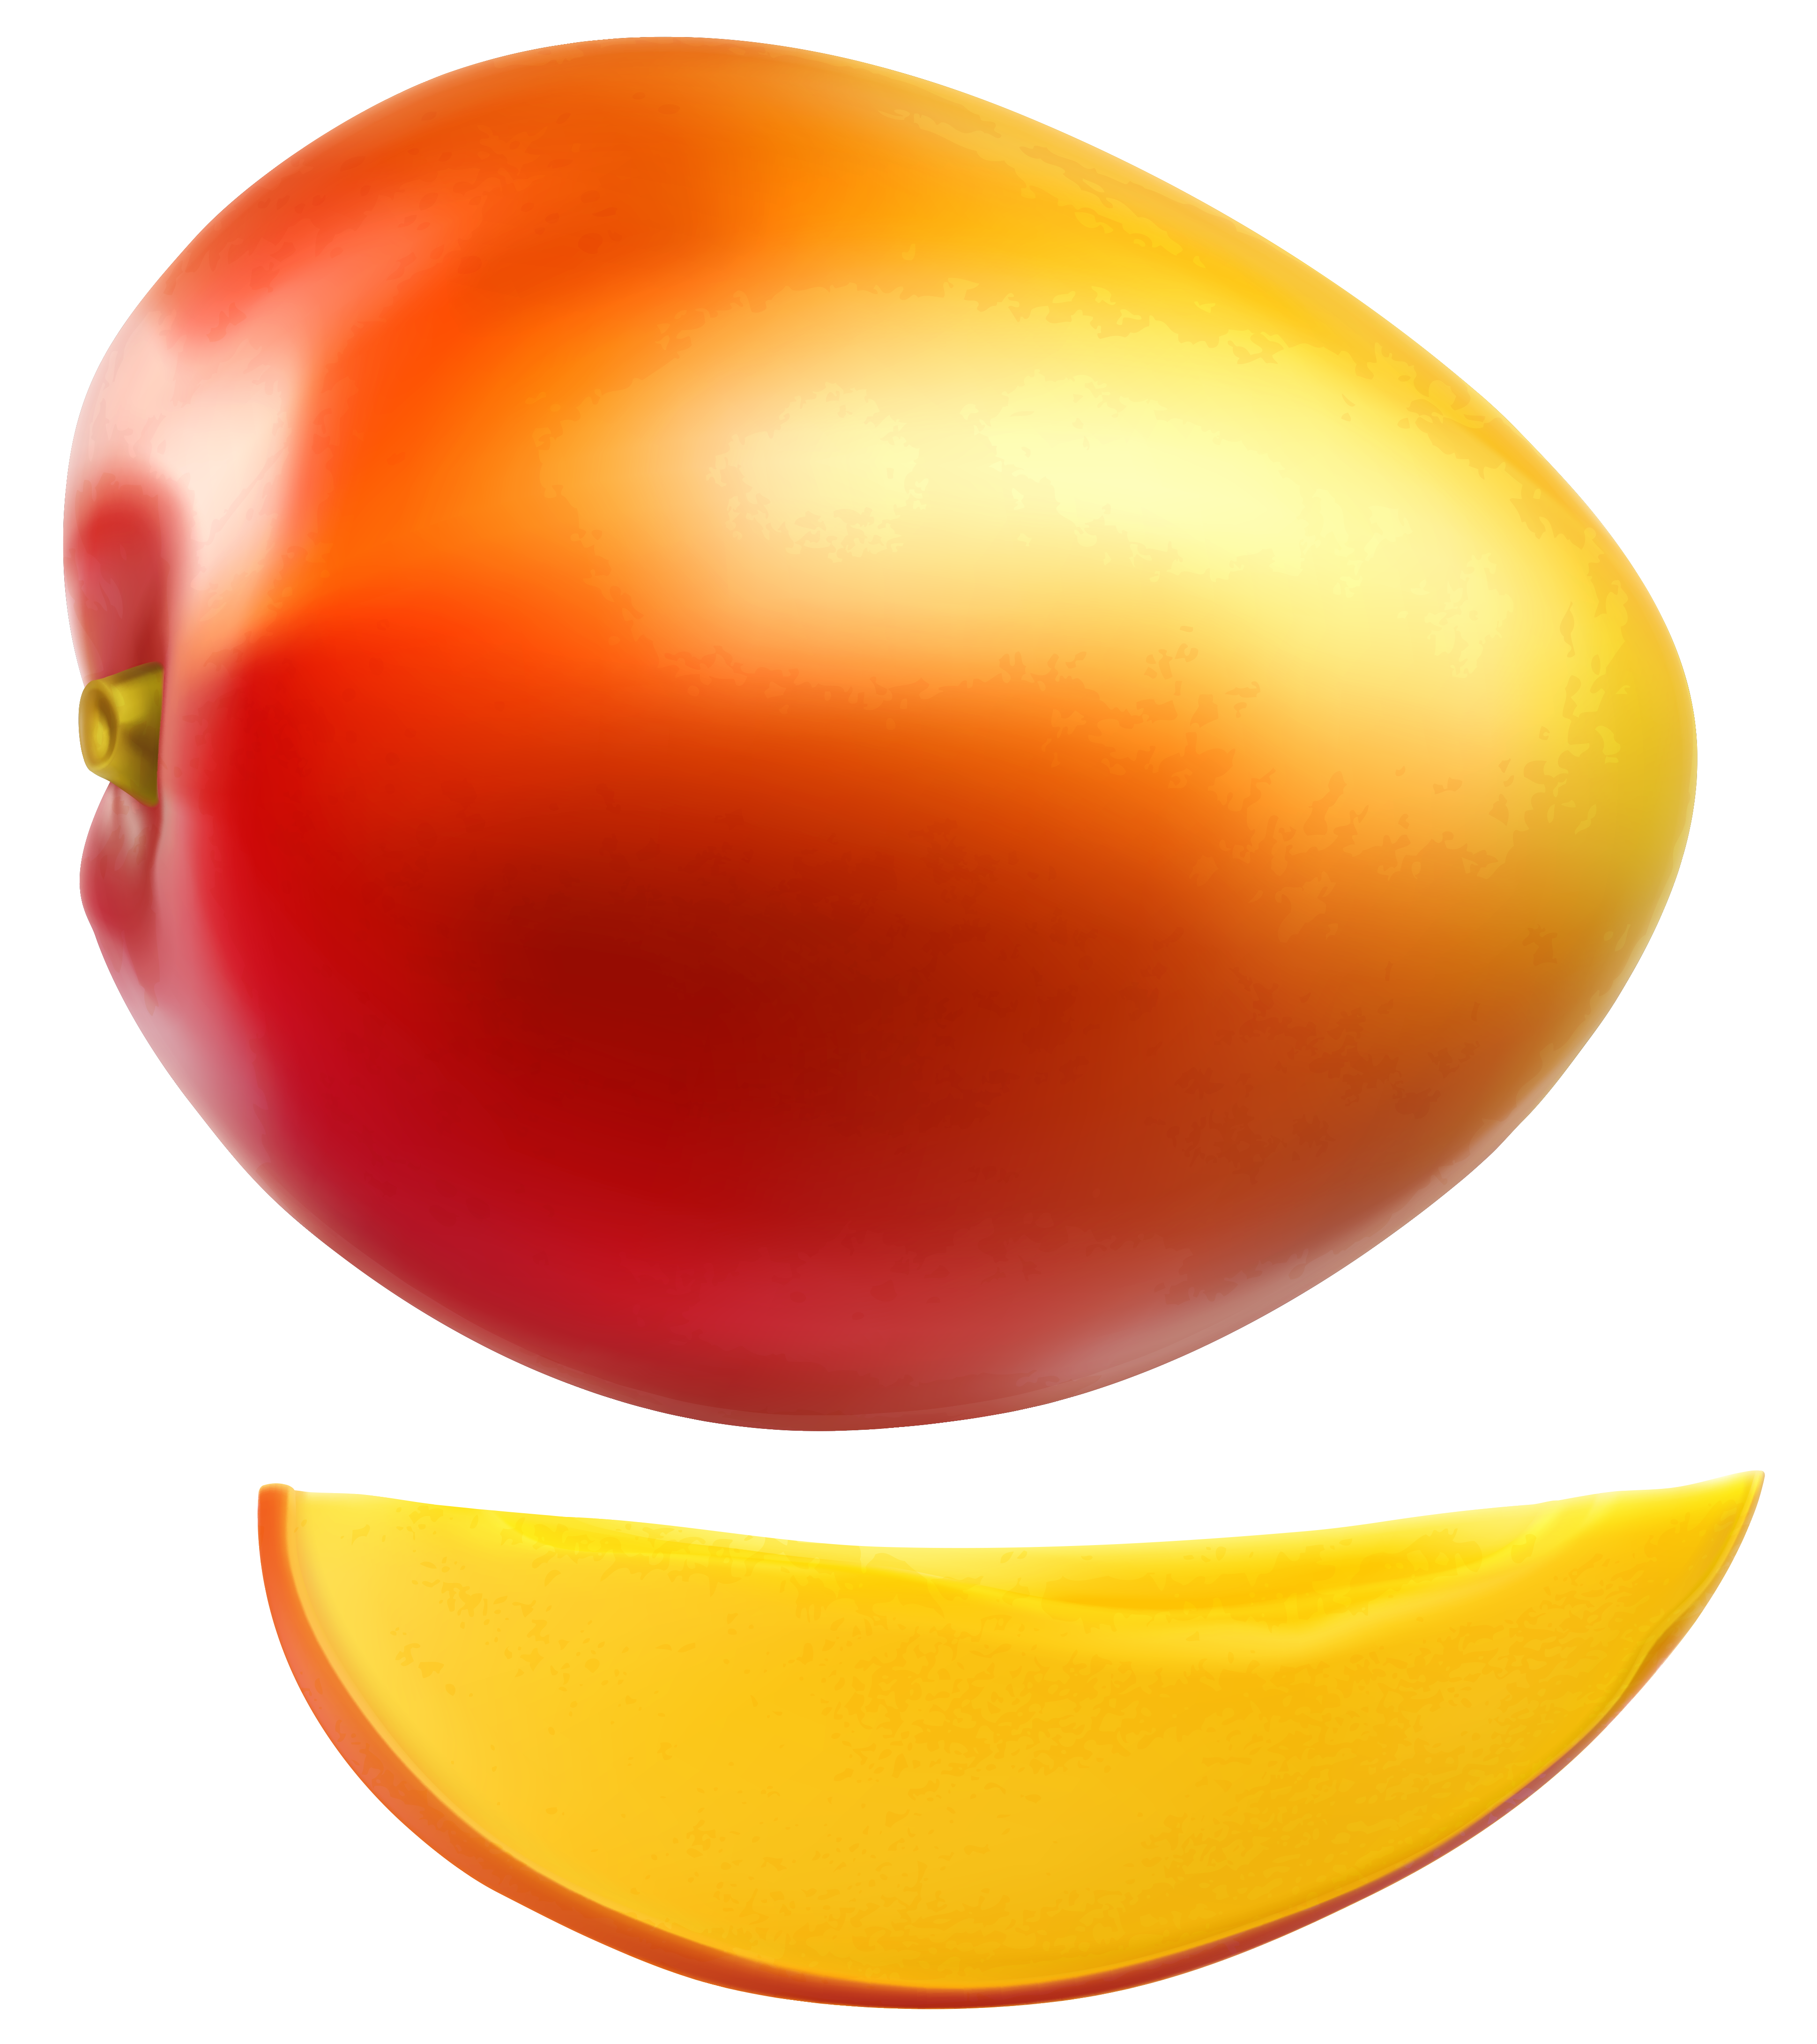 Mango clipart artistic. Single png image arts